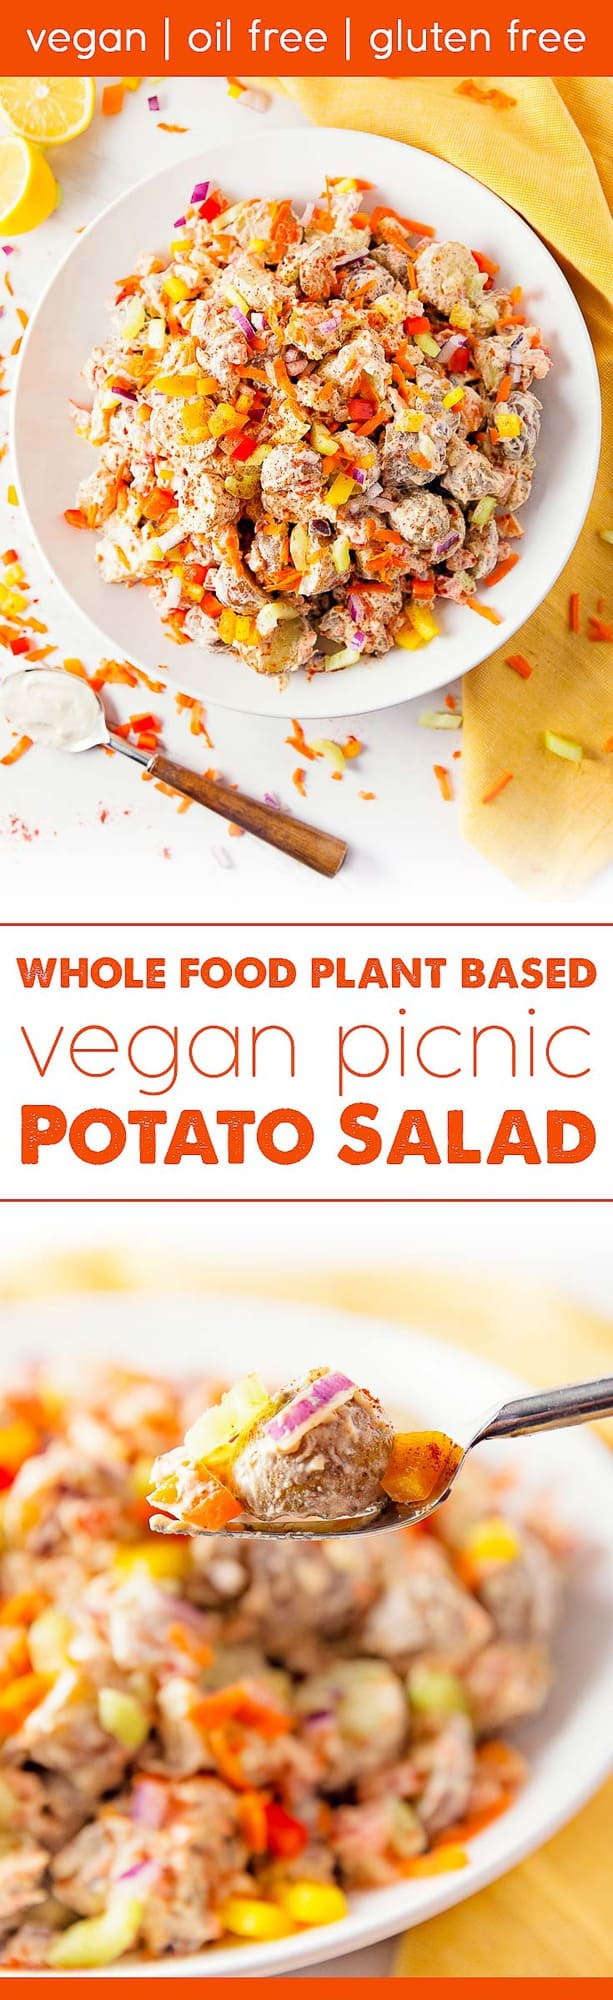 Vegan Picnic Potato Salad, vegan, vegetarian, whole food plant based, gluten free, recipe, wfpb, healthy, oil free, no refined sugar, no oil, refined sugar free, dinner, side, side dish, dairy free, dinner party, entertaining